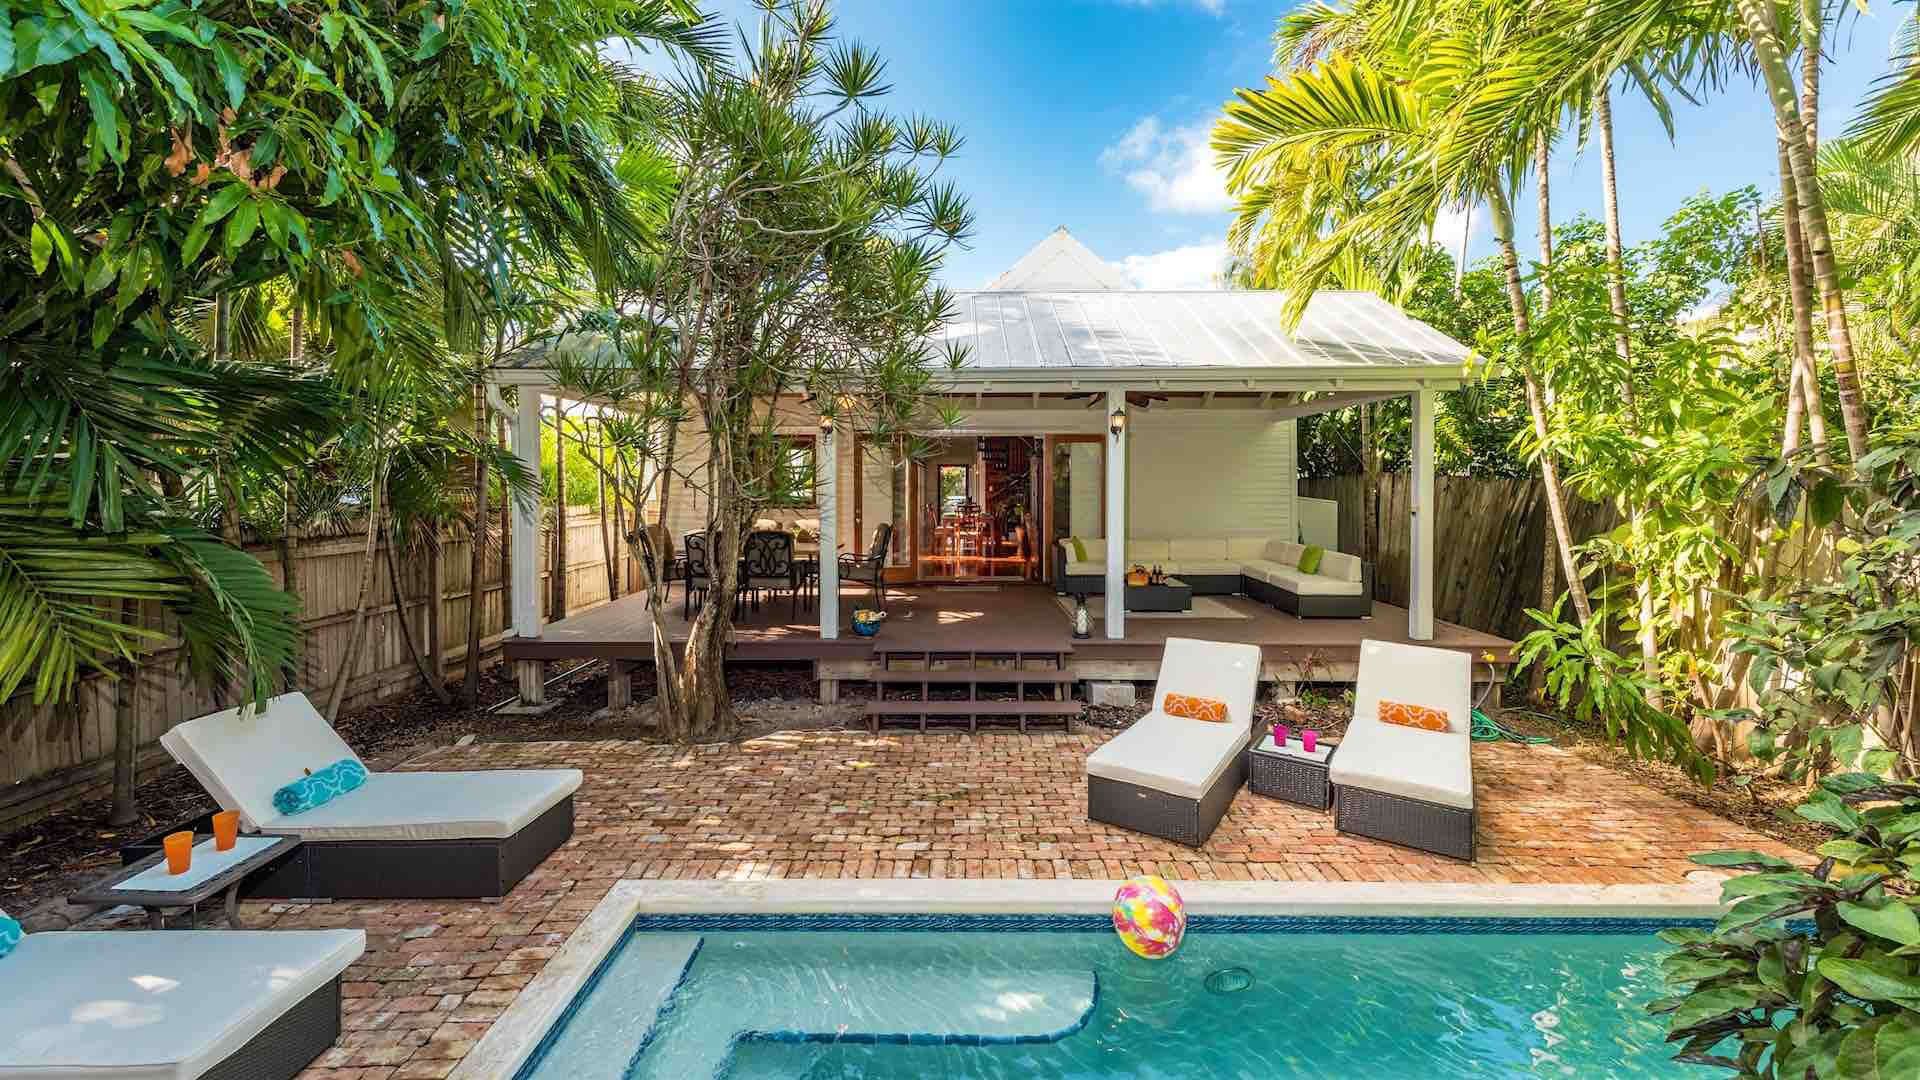 Stupendous Havana House Vacation Rental In Key West Fl Last Key Realty Home Interior And Landscaping Synyenasavecom